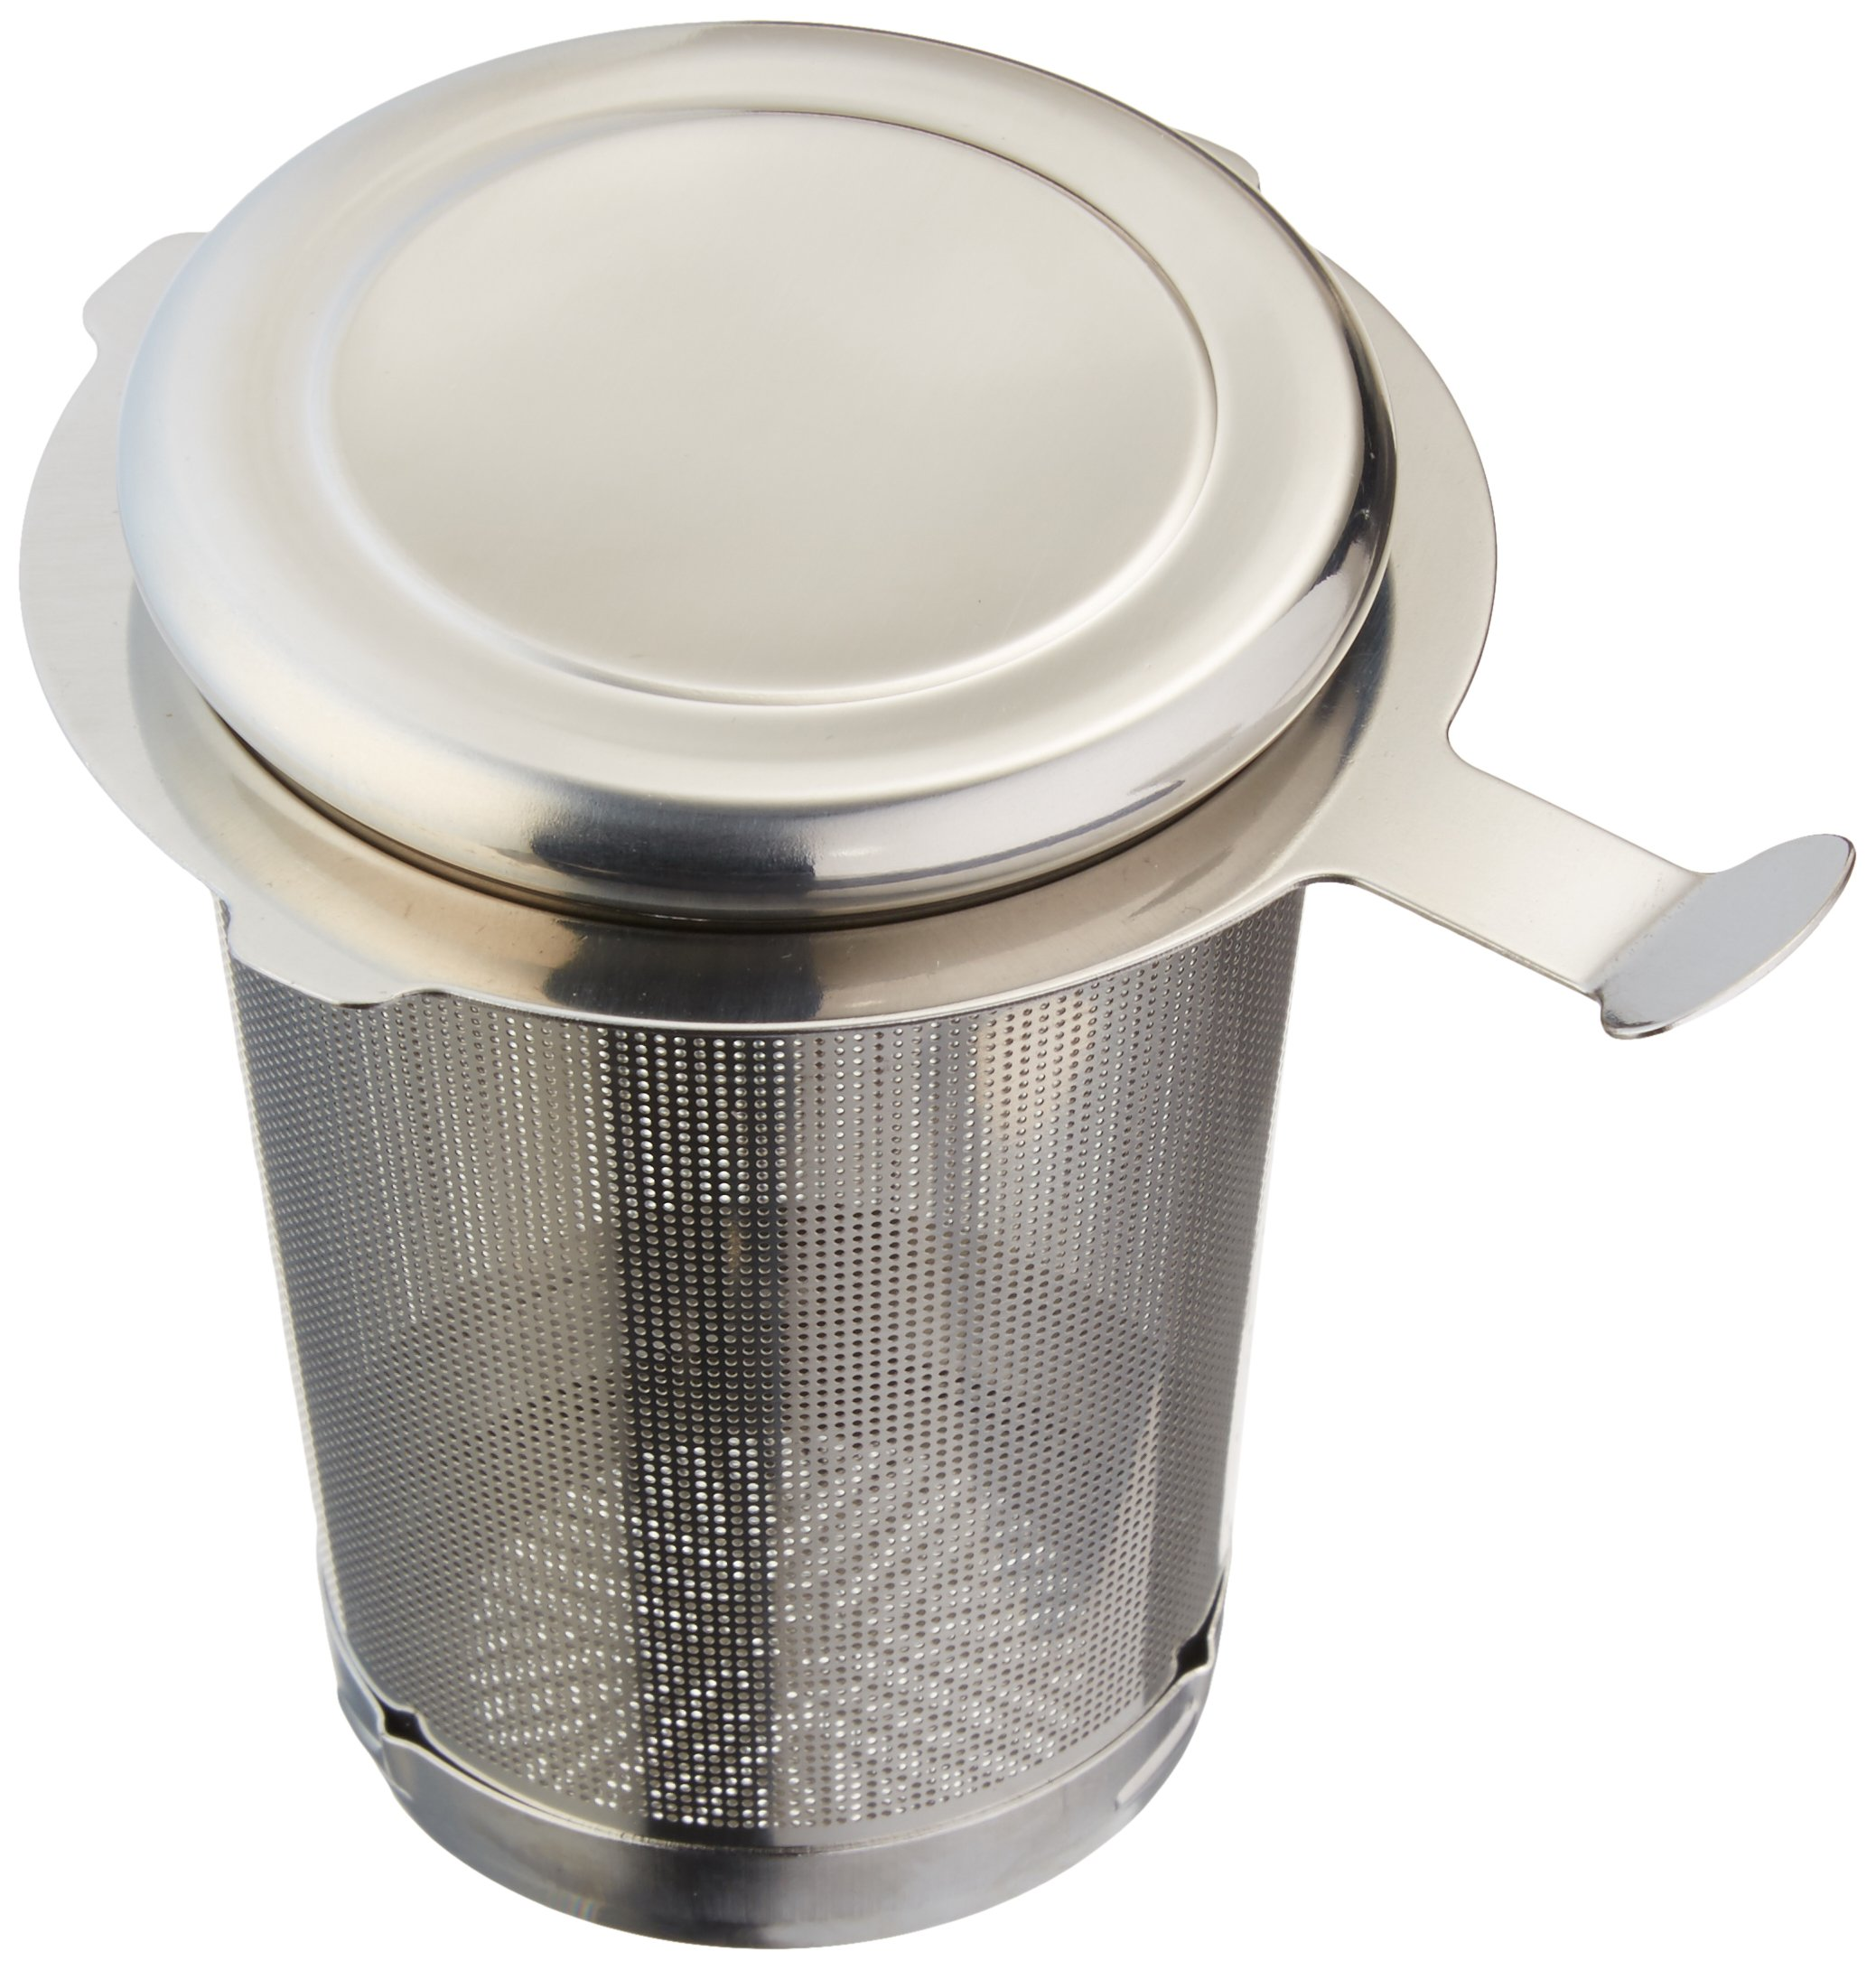 Frieling USA G2041 3'' Easy Clean Tea Infuser with Removal Bottom, Medium, Silver